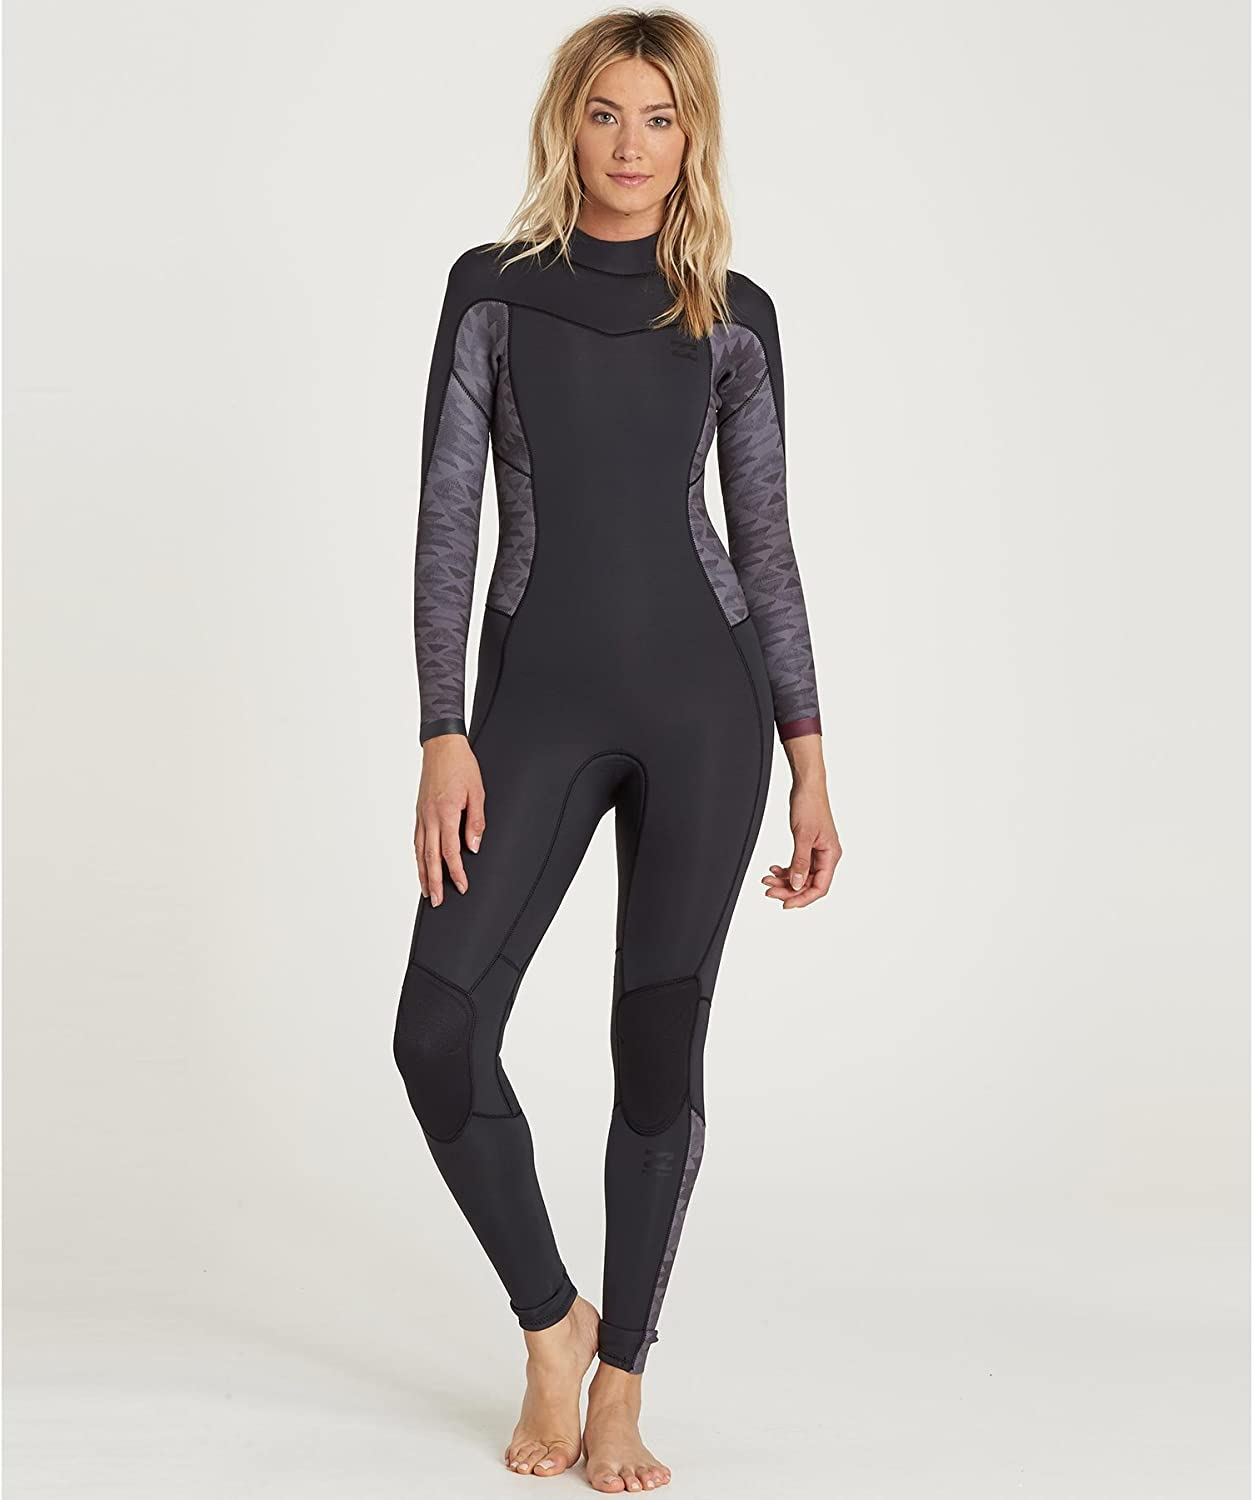 Billabong Women's Synergy 3/2 Back Zip Sealed Seam Full Wetsuit